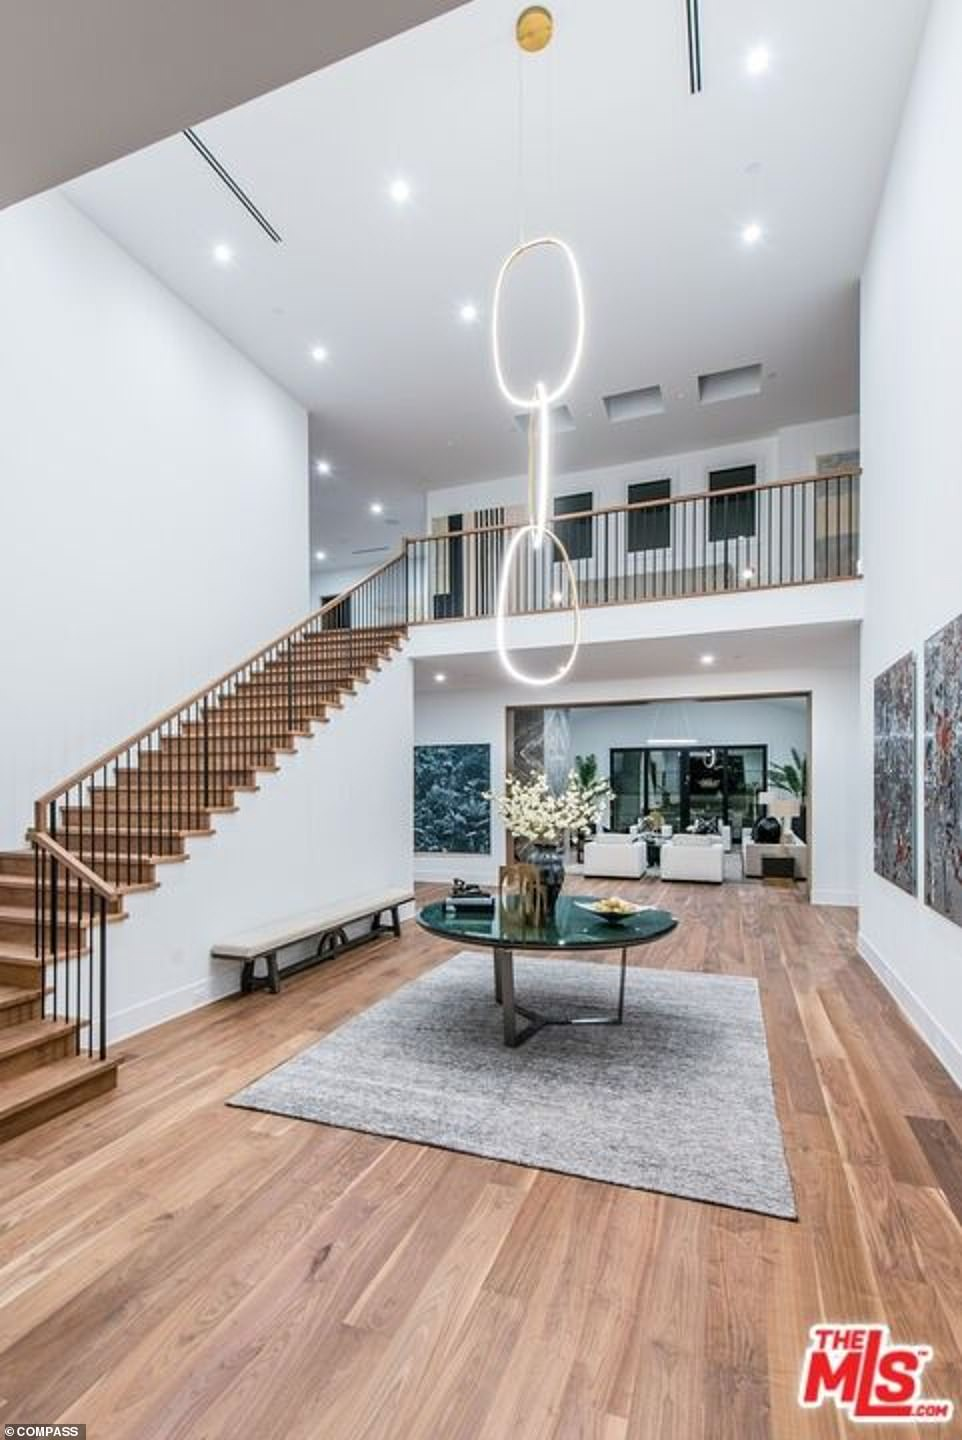 So much space: The entry way shows off an impressive stair case and light features